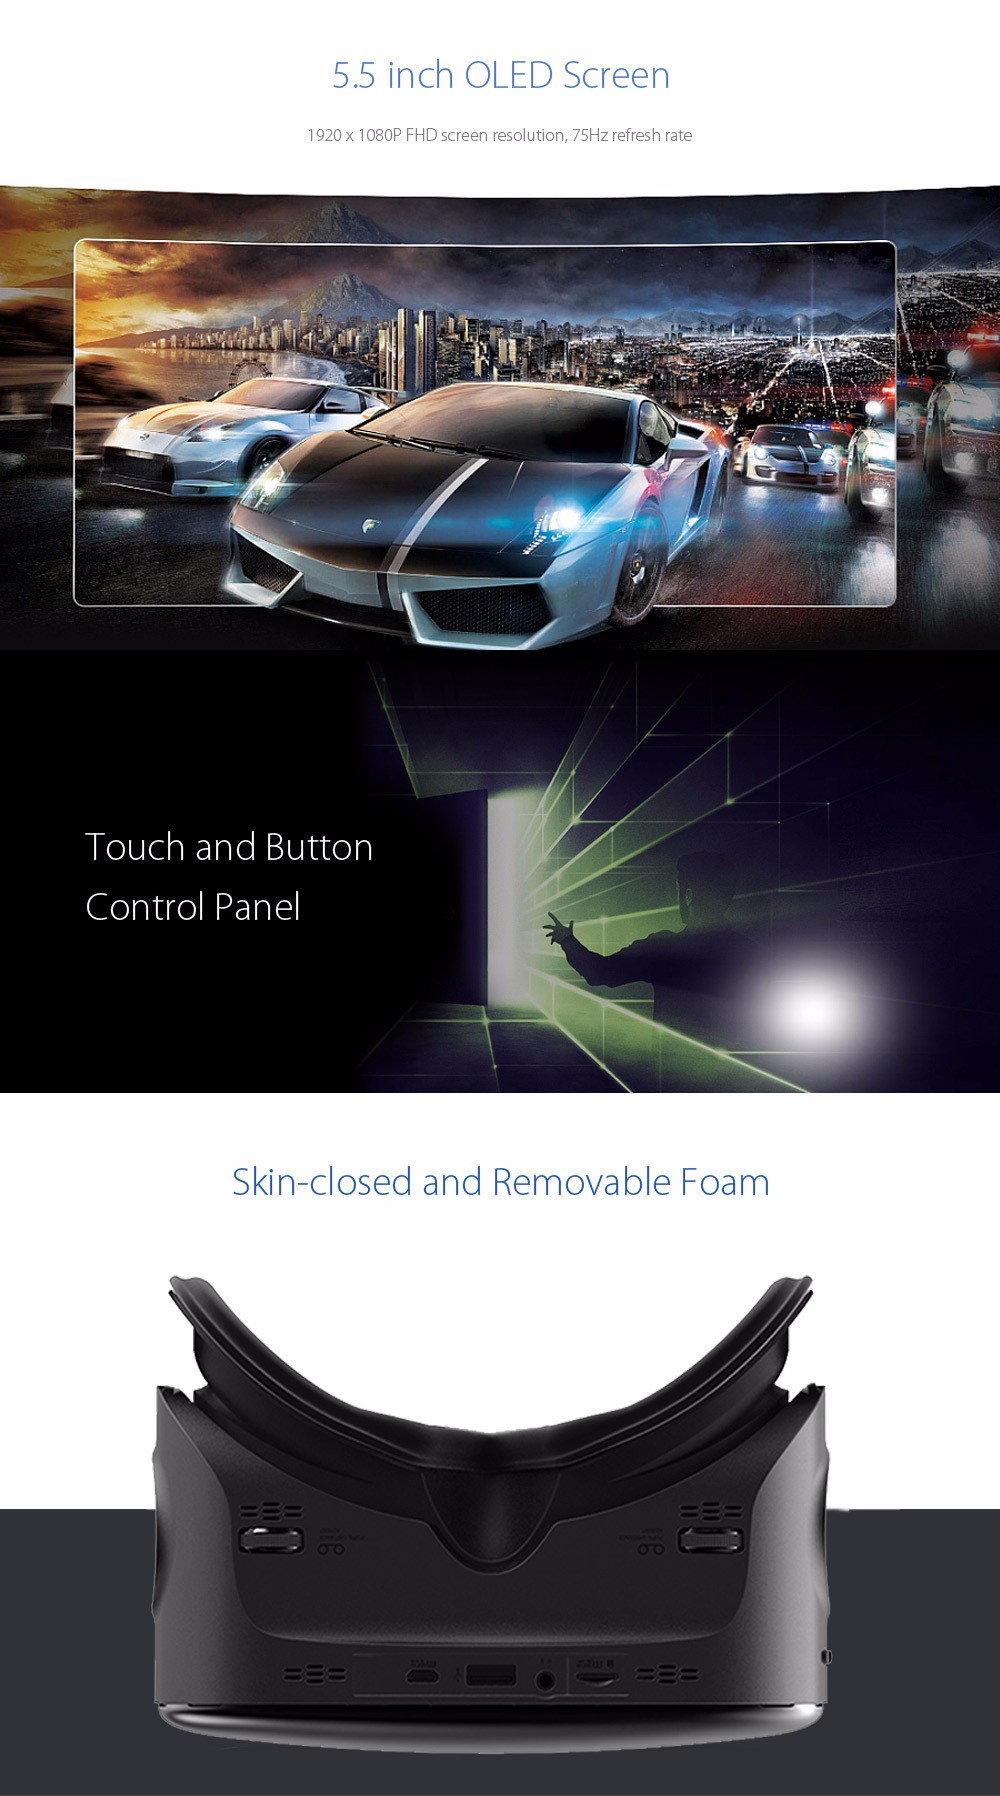 VIULUX V6 All-in-one VR 3D Headset 110 Degree FOV IPD Adjustment 5.5 inch Display Allwinner H8 Chipset